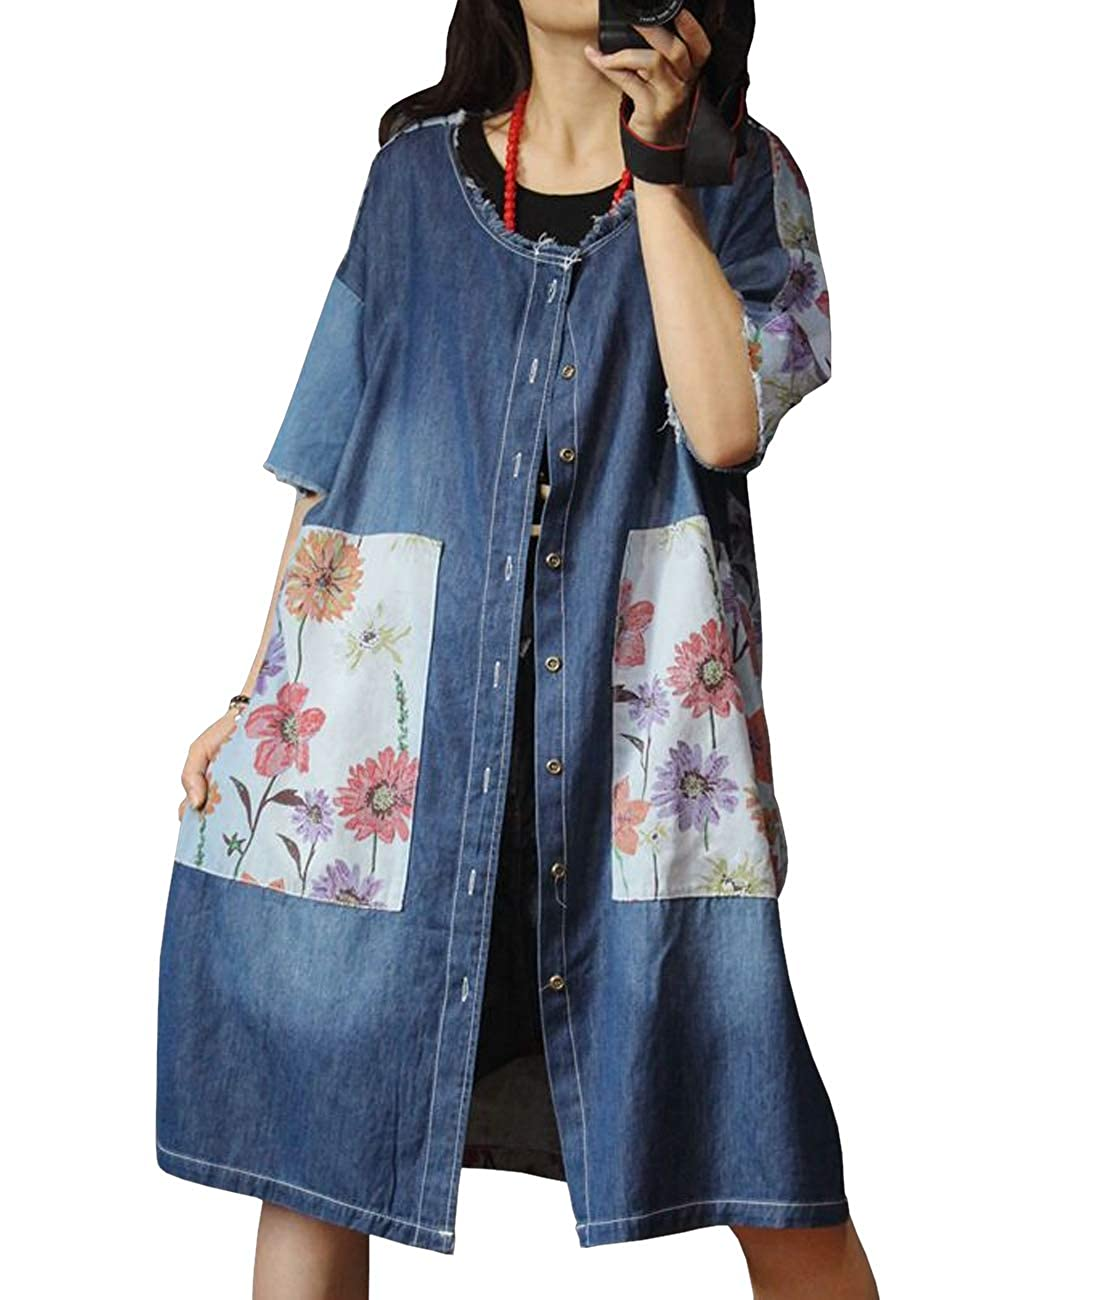 Jep bluee YESNO WF9 Women Casual Long Button Down Denim Jacket Loose Fit Jean Trench Coat Outwear 4 5 Sleeve Ripped Large Flap Pockets